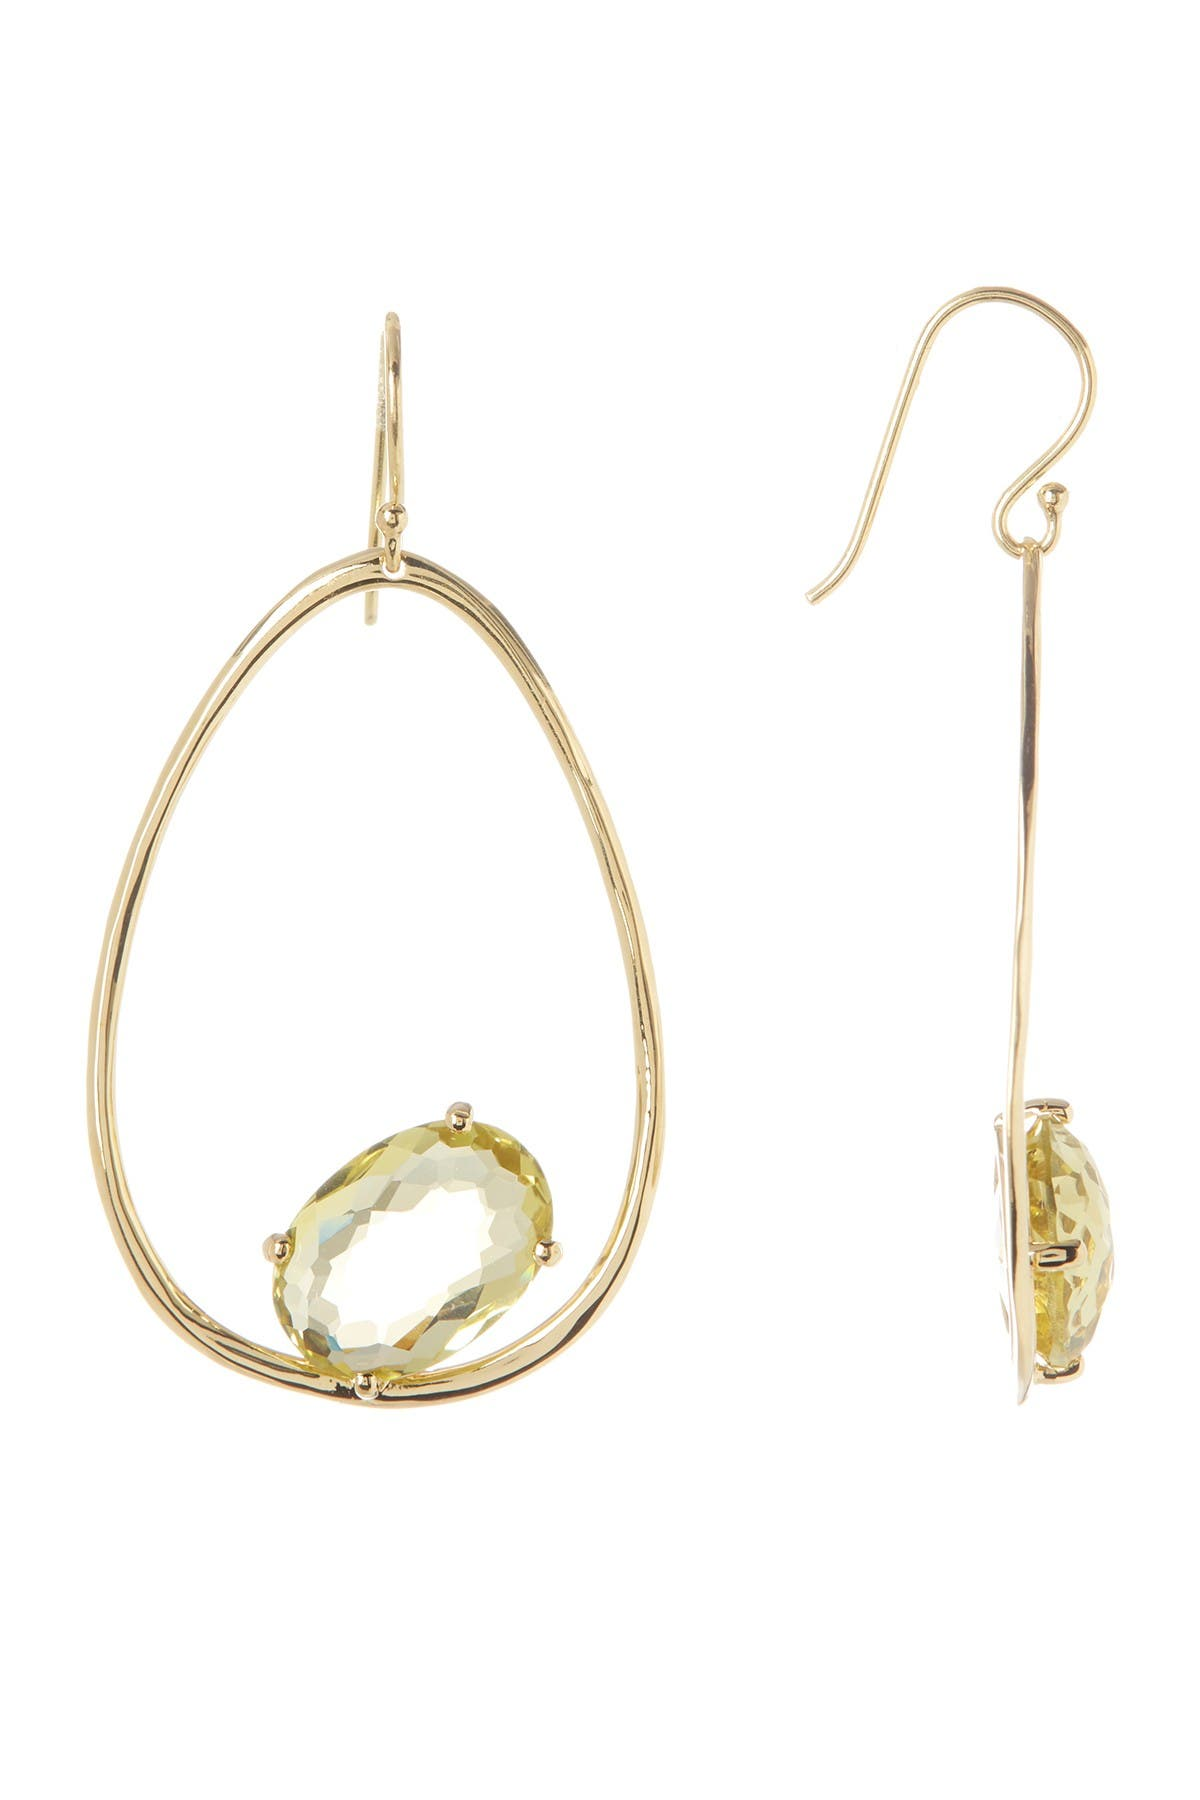 Image of Ippolita 18K Gold Rock Candy Wire Earrings with One Large Oval Stone in Green Gold Citrine